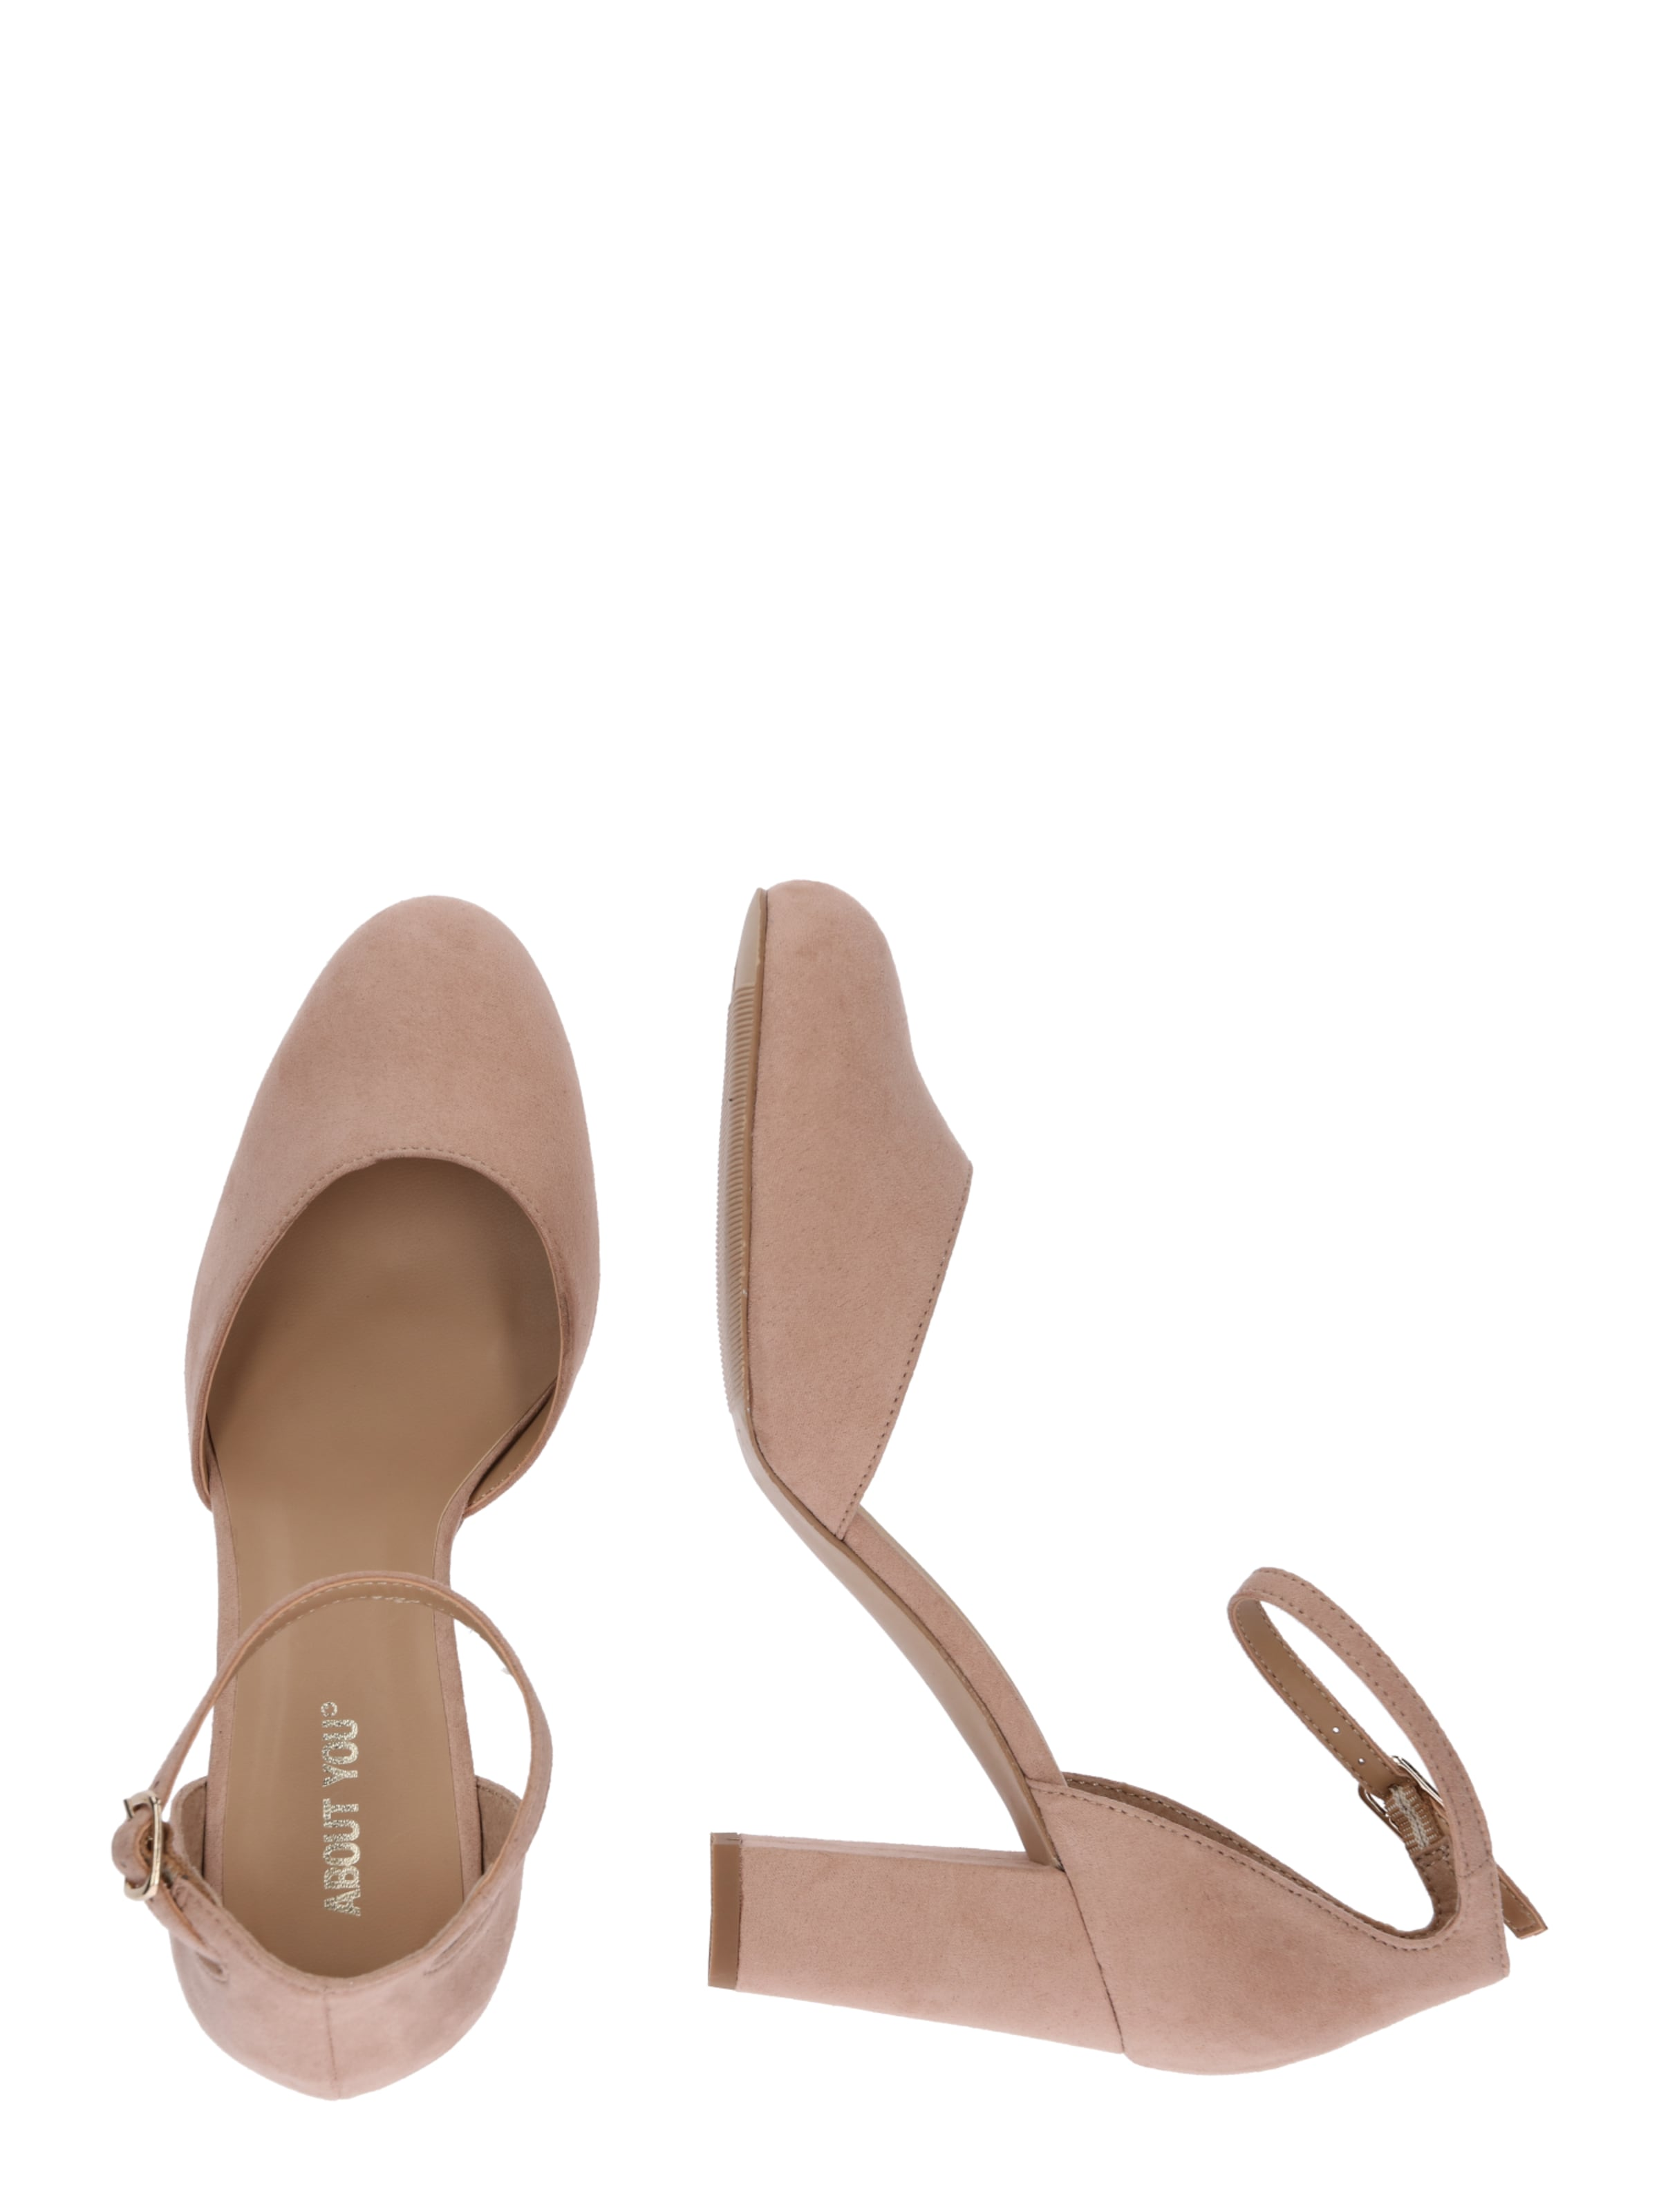 About Rosa 'eva' In Slingpumps You 0wkOP8nX